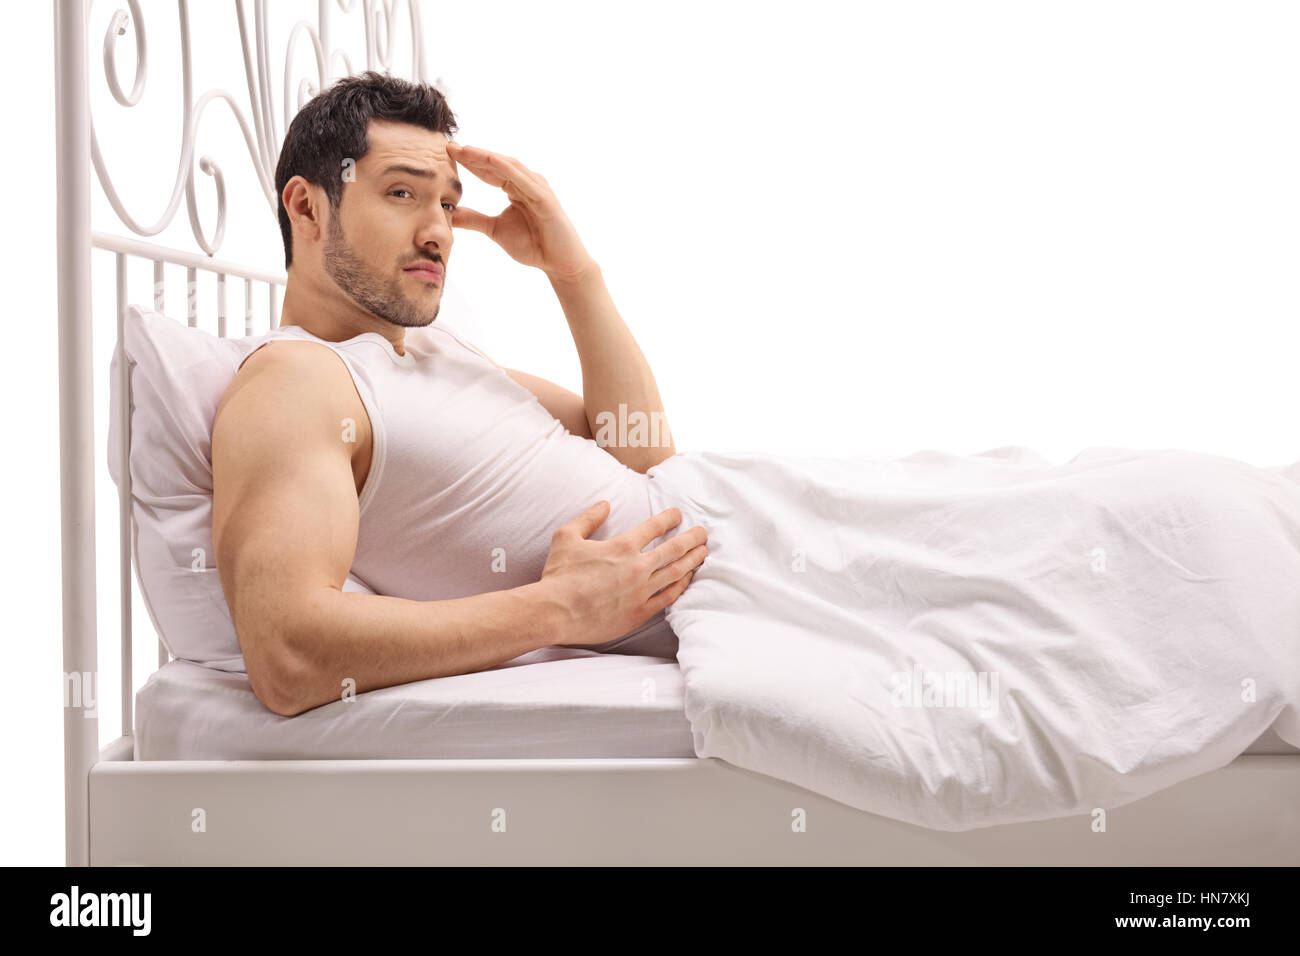 Worried guy lying in bed isolated on white background - Stock Image